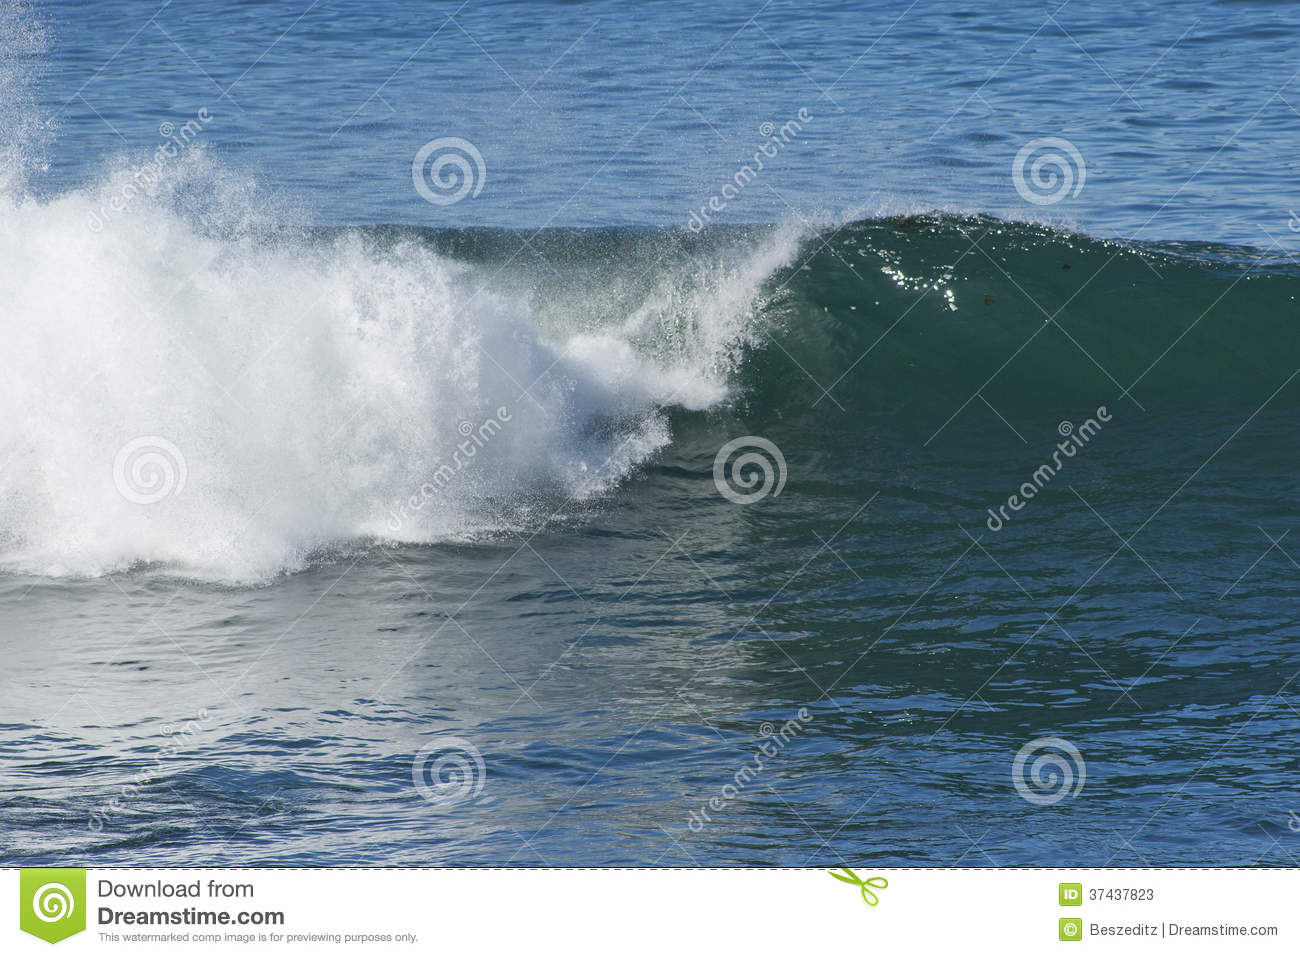 Ocean wave with the curl starting on one end and white water splashing ...